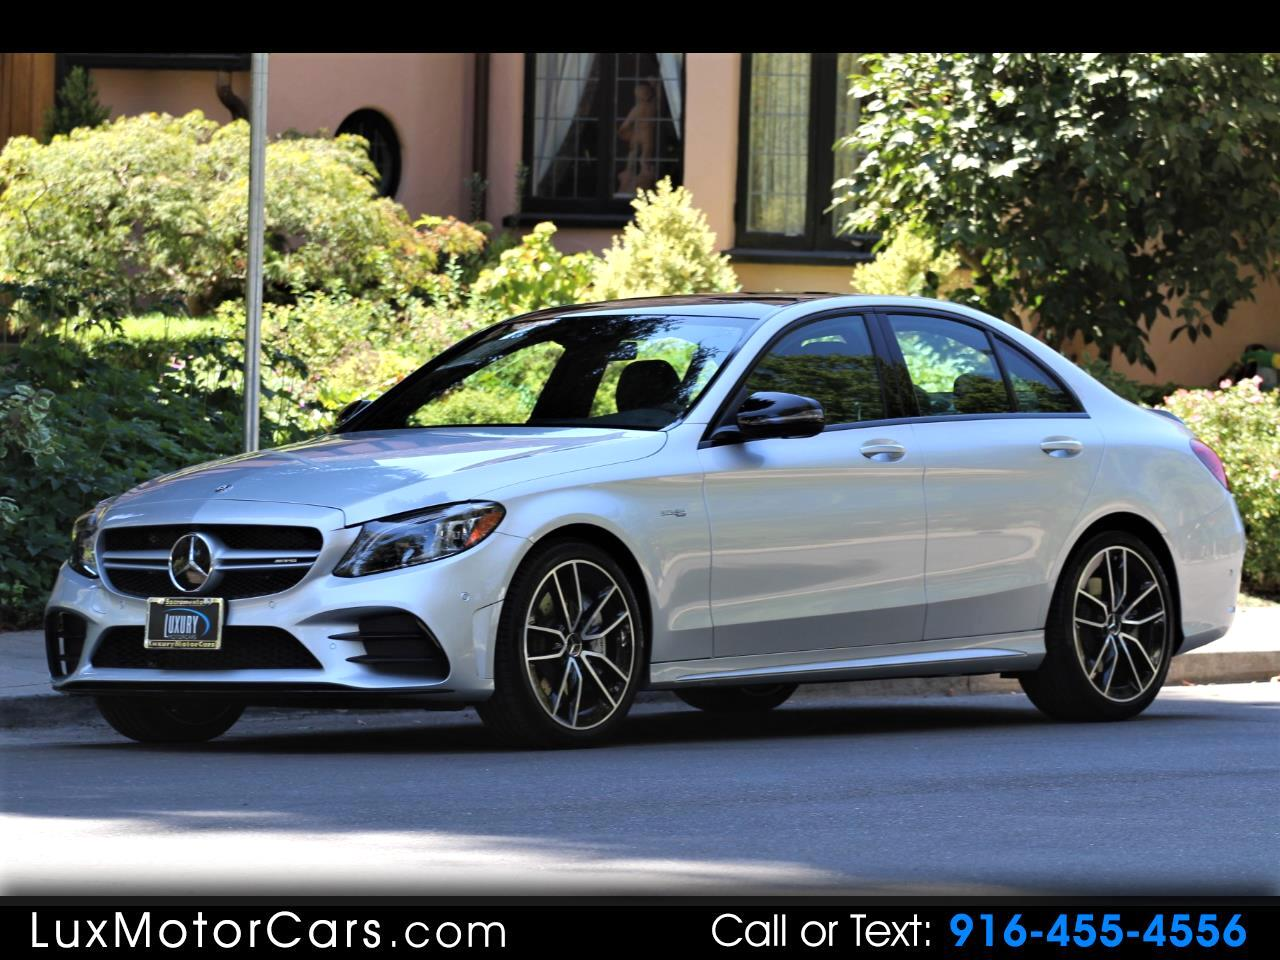 2019 Mercedes-Benz C-Class AMG C43 Sedan